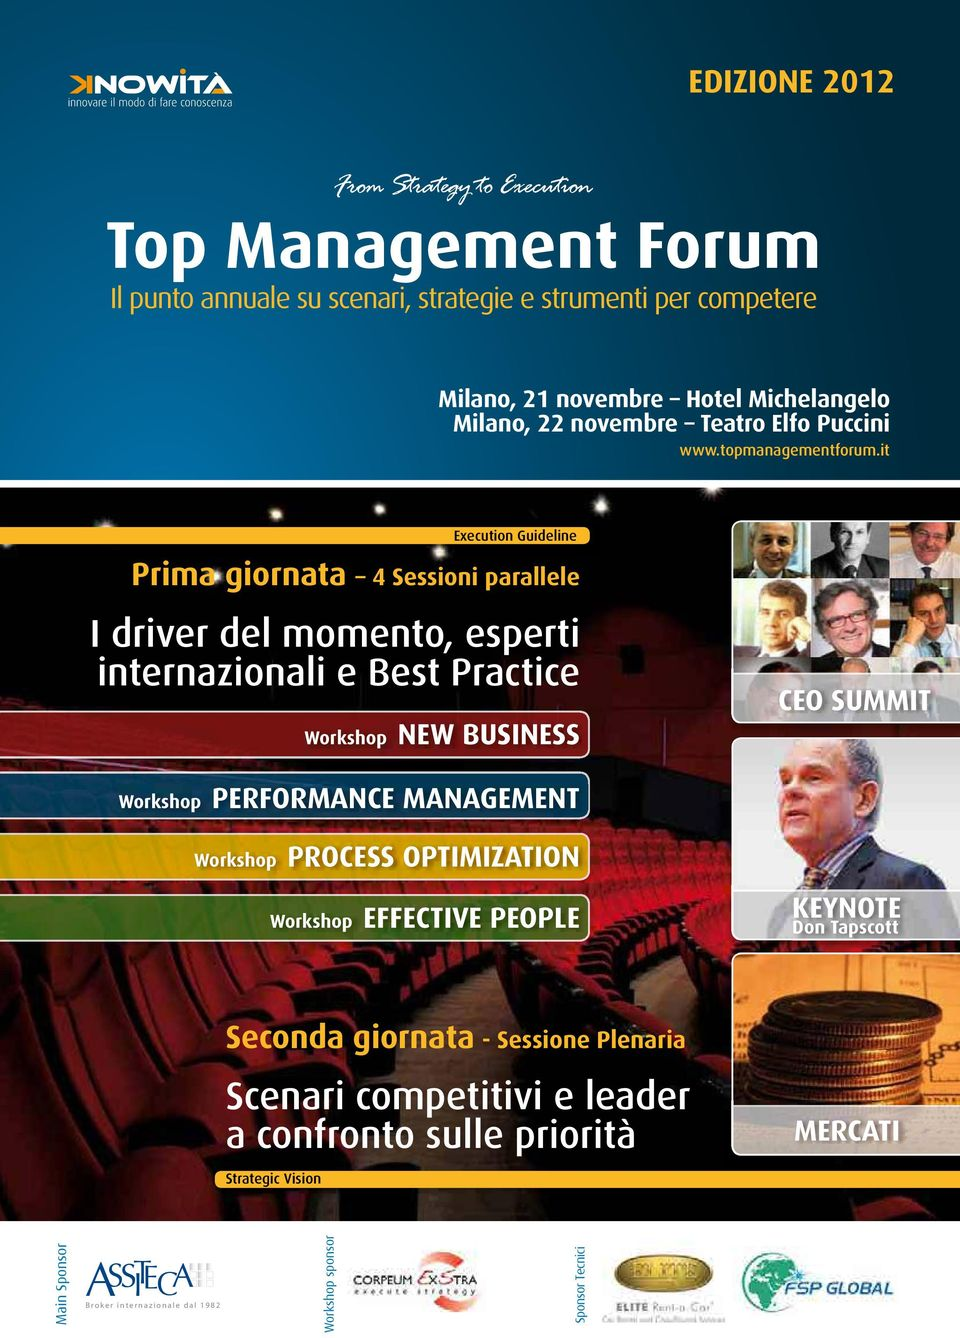 NEW BUSINESS CEO SUMMIT Workshop PERFORMANCE MANAGEMENT Workshop PROCESS OPTIMIZATION Workshop EFFECTIVE PEOPLE KEYNOTE Don Tapscott Seconda giornata - Sessione